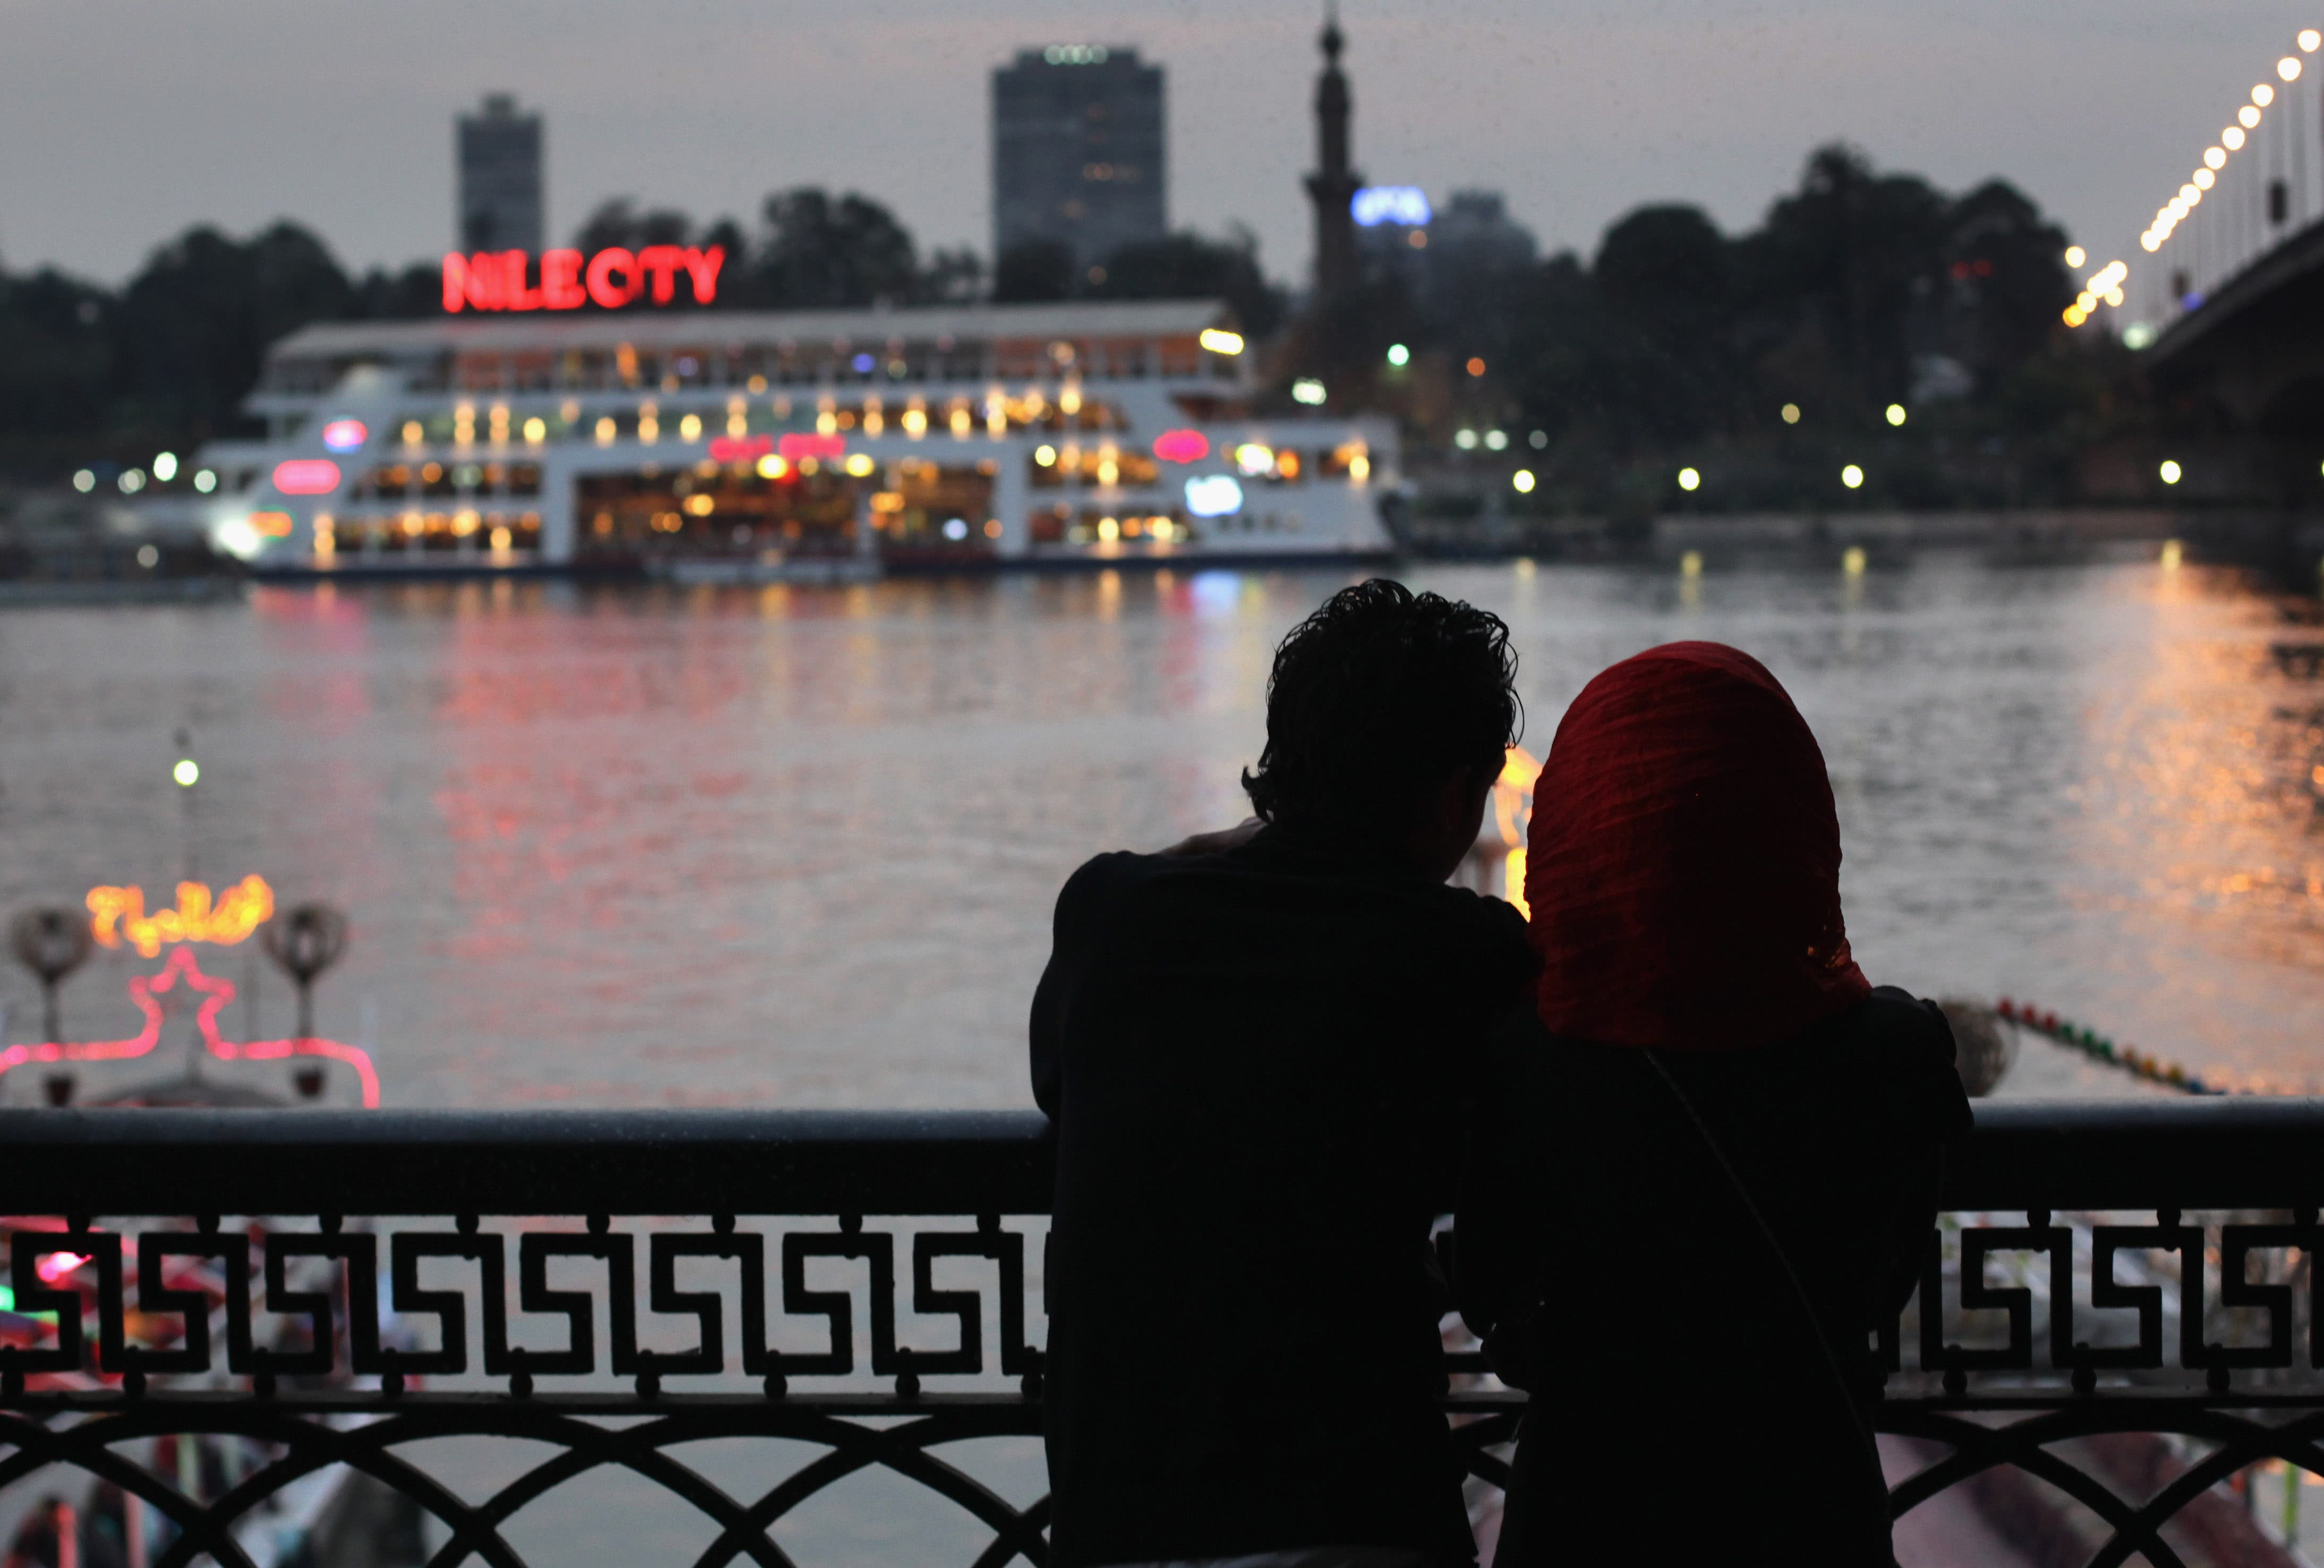 Arabs this Valentines Day may be due some love! V-Day in the Middle East might be a subdued time of mixed feelings for some who have suffered the Arab revolutions.